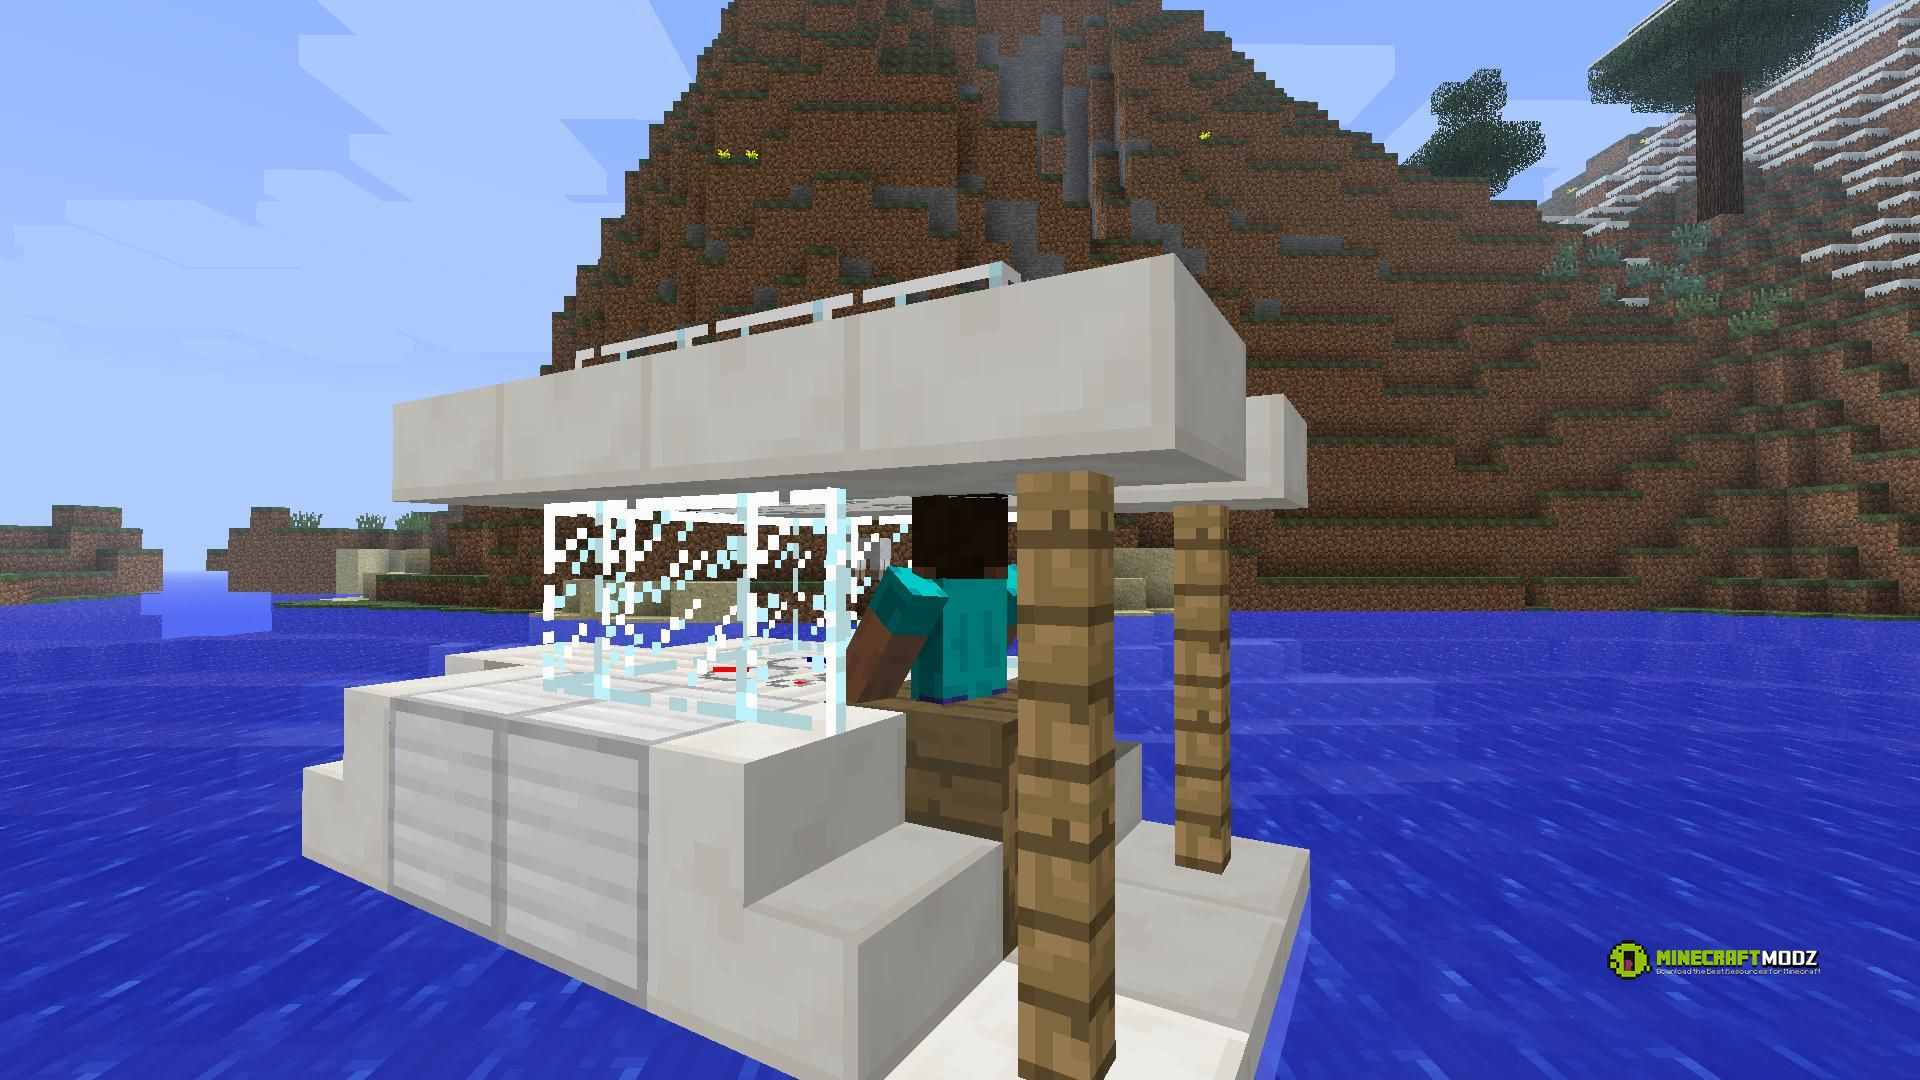 archimedes-ships-mod-for-minecraft-1-7-101-7-21-6-41-5-2-1693-12 Archimedes' Ships Mod For Minecraft 1.7.10/1.7.2/1.6.4/1.5.2